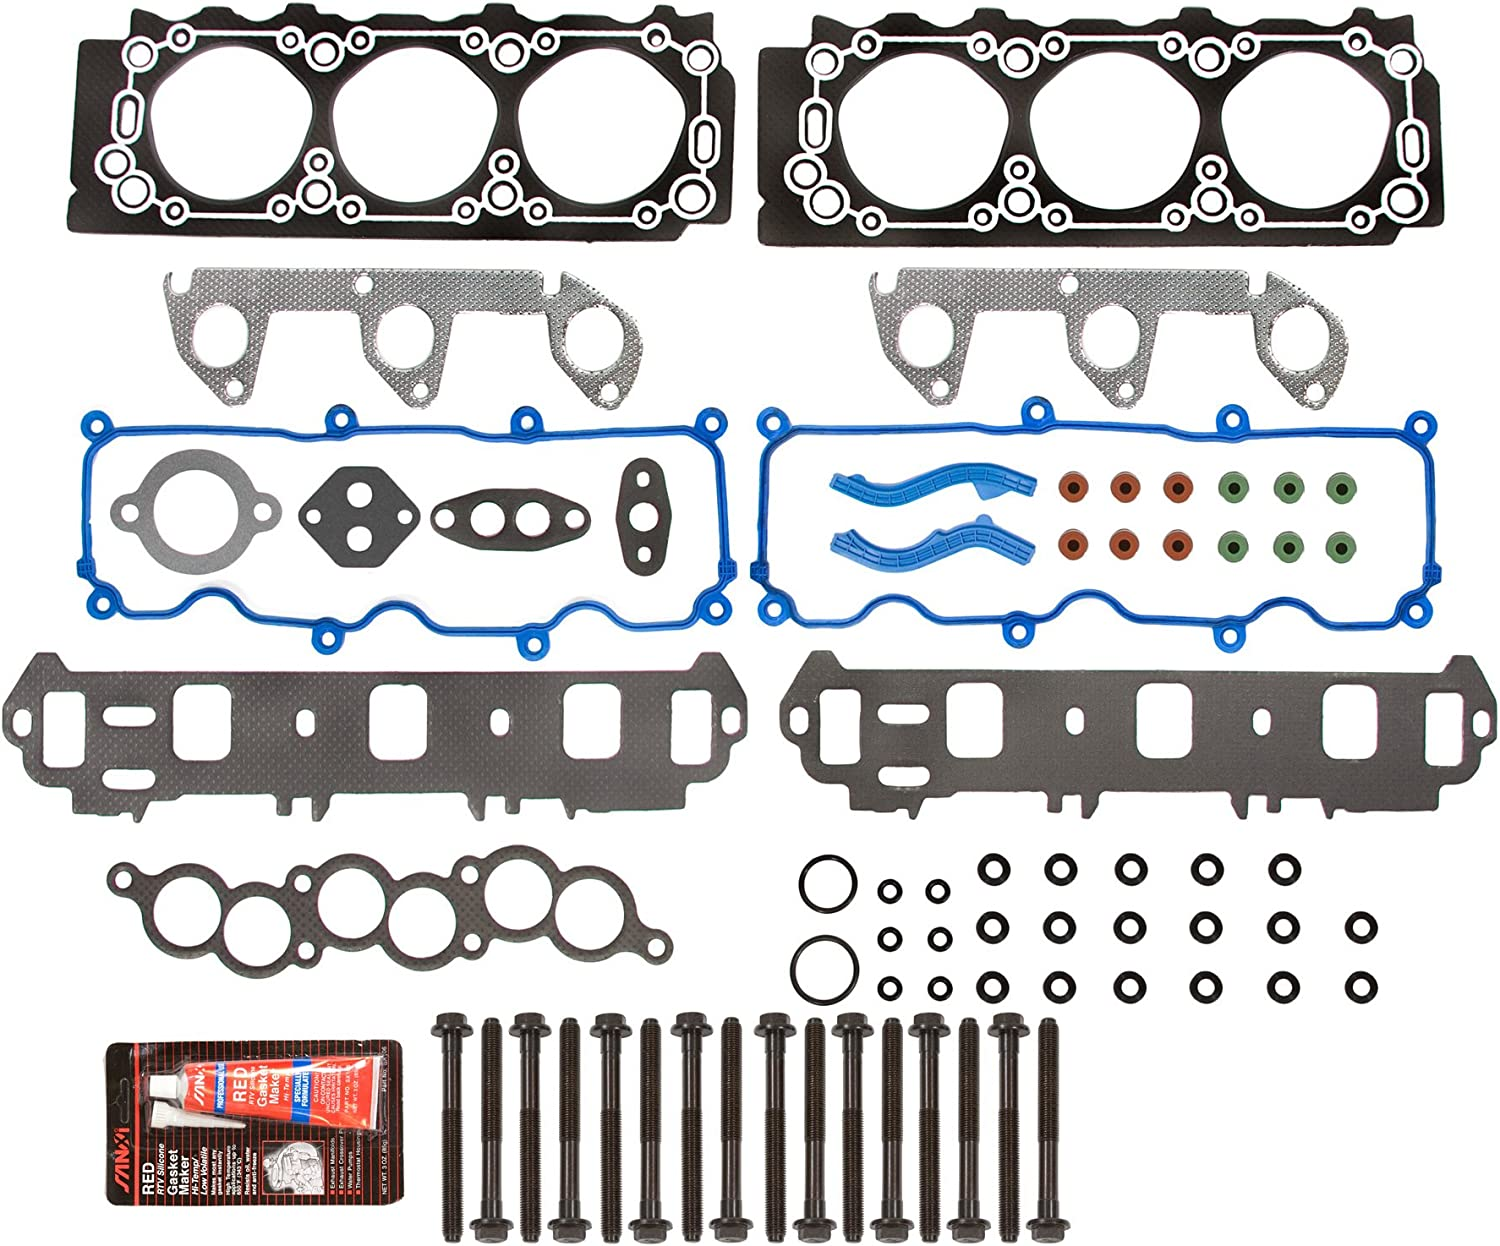 Replacement Parts Evergreen HSHB8-21400-2 Cylinder Head Gasket Set ...